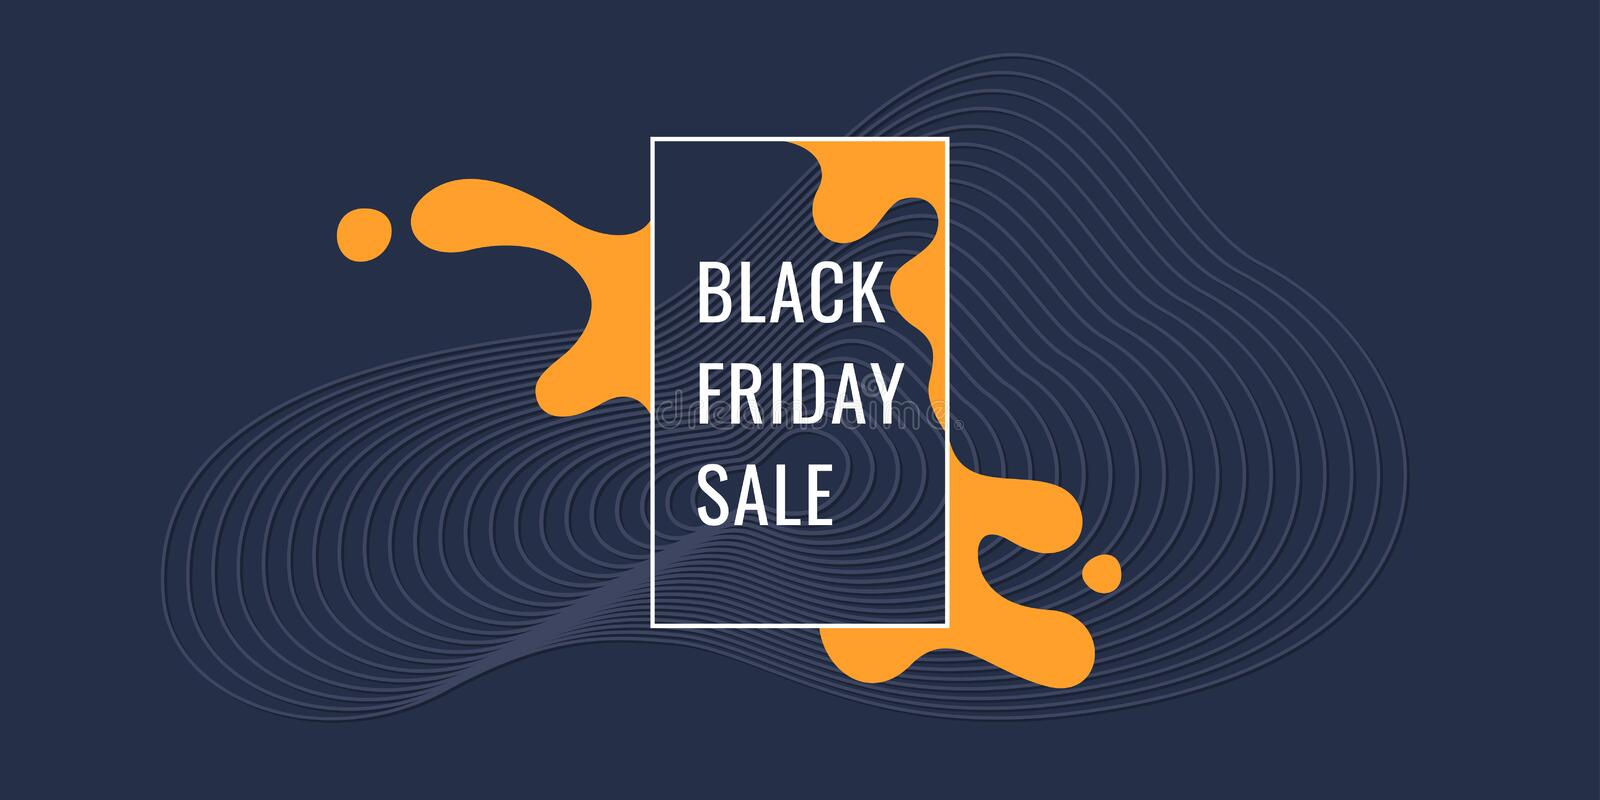 Black friday poster. Organic forms with dynamic waves and lines on a dark background. Vector. vector illustration